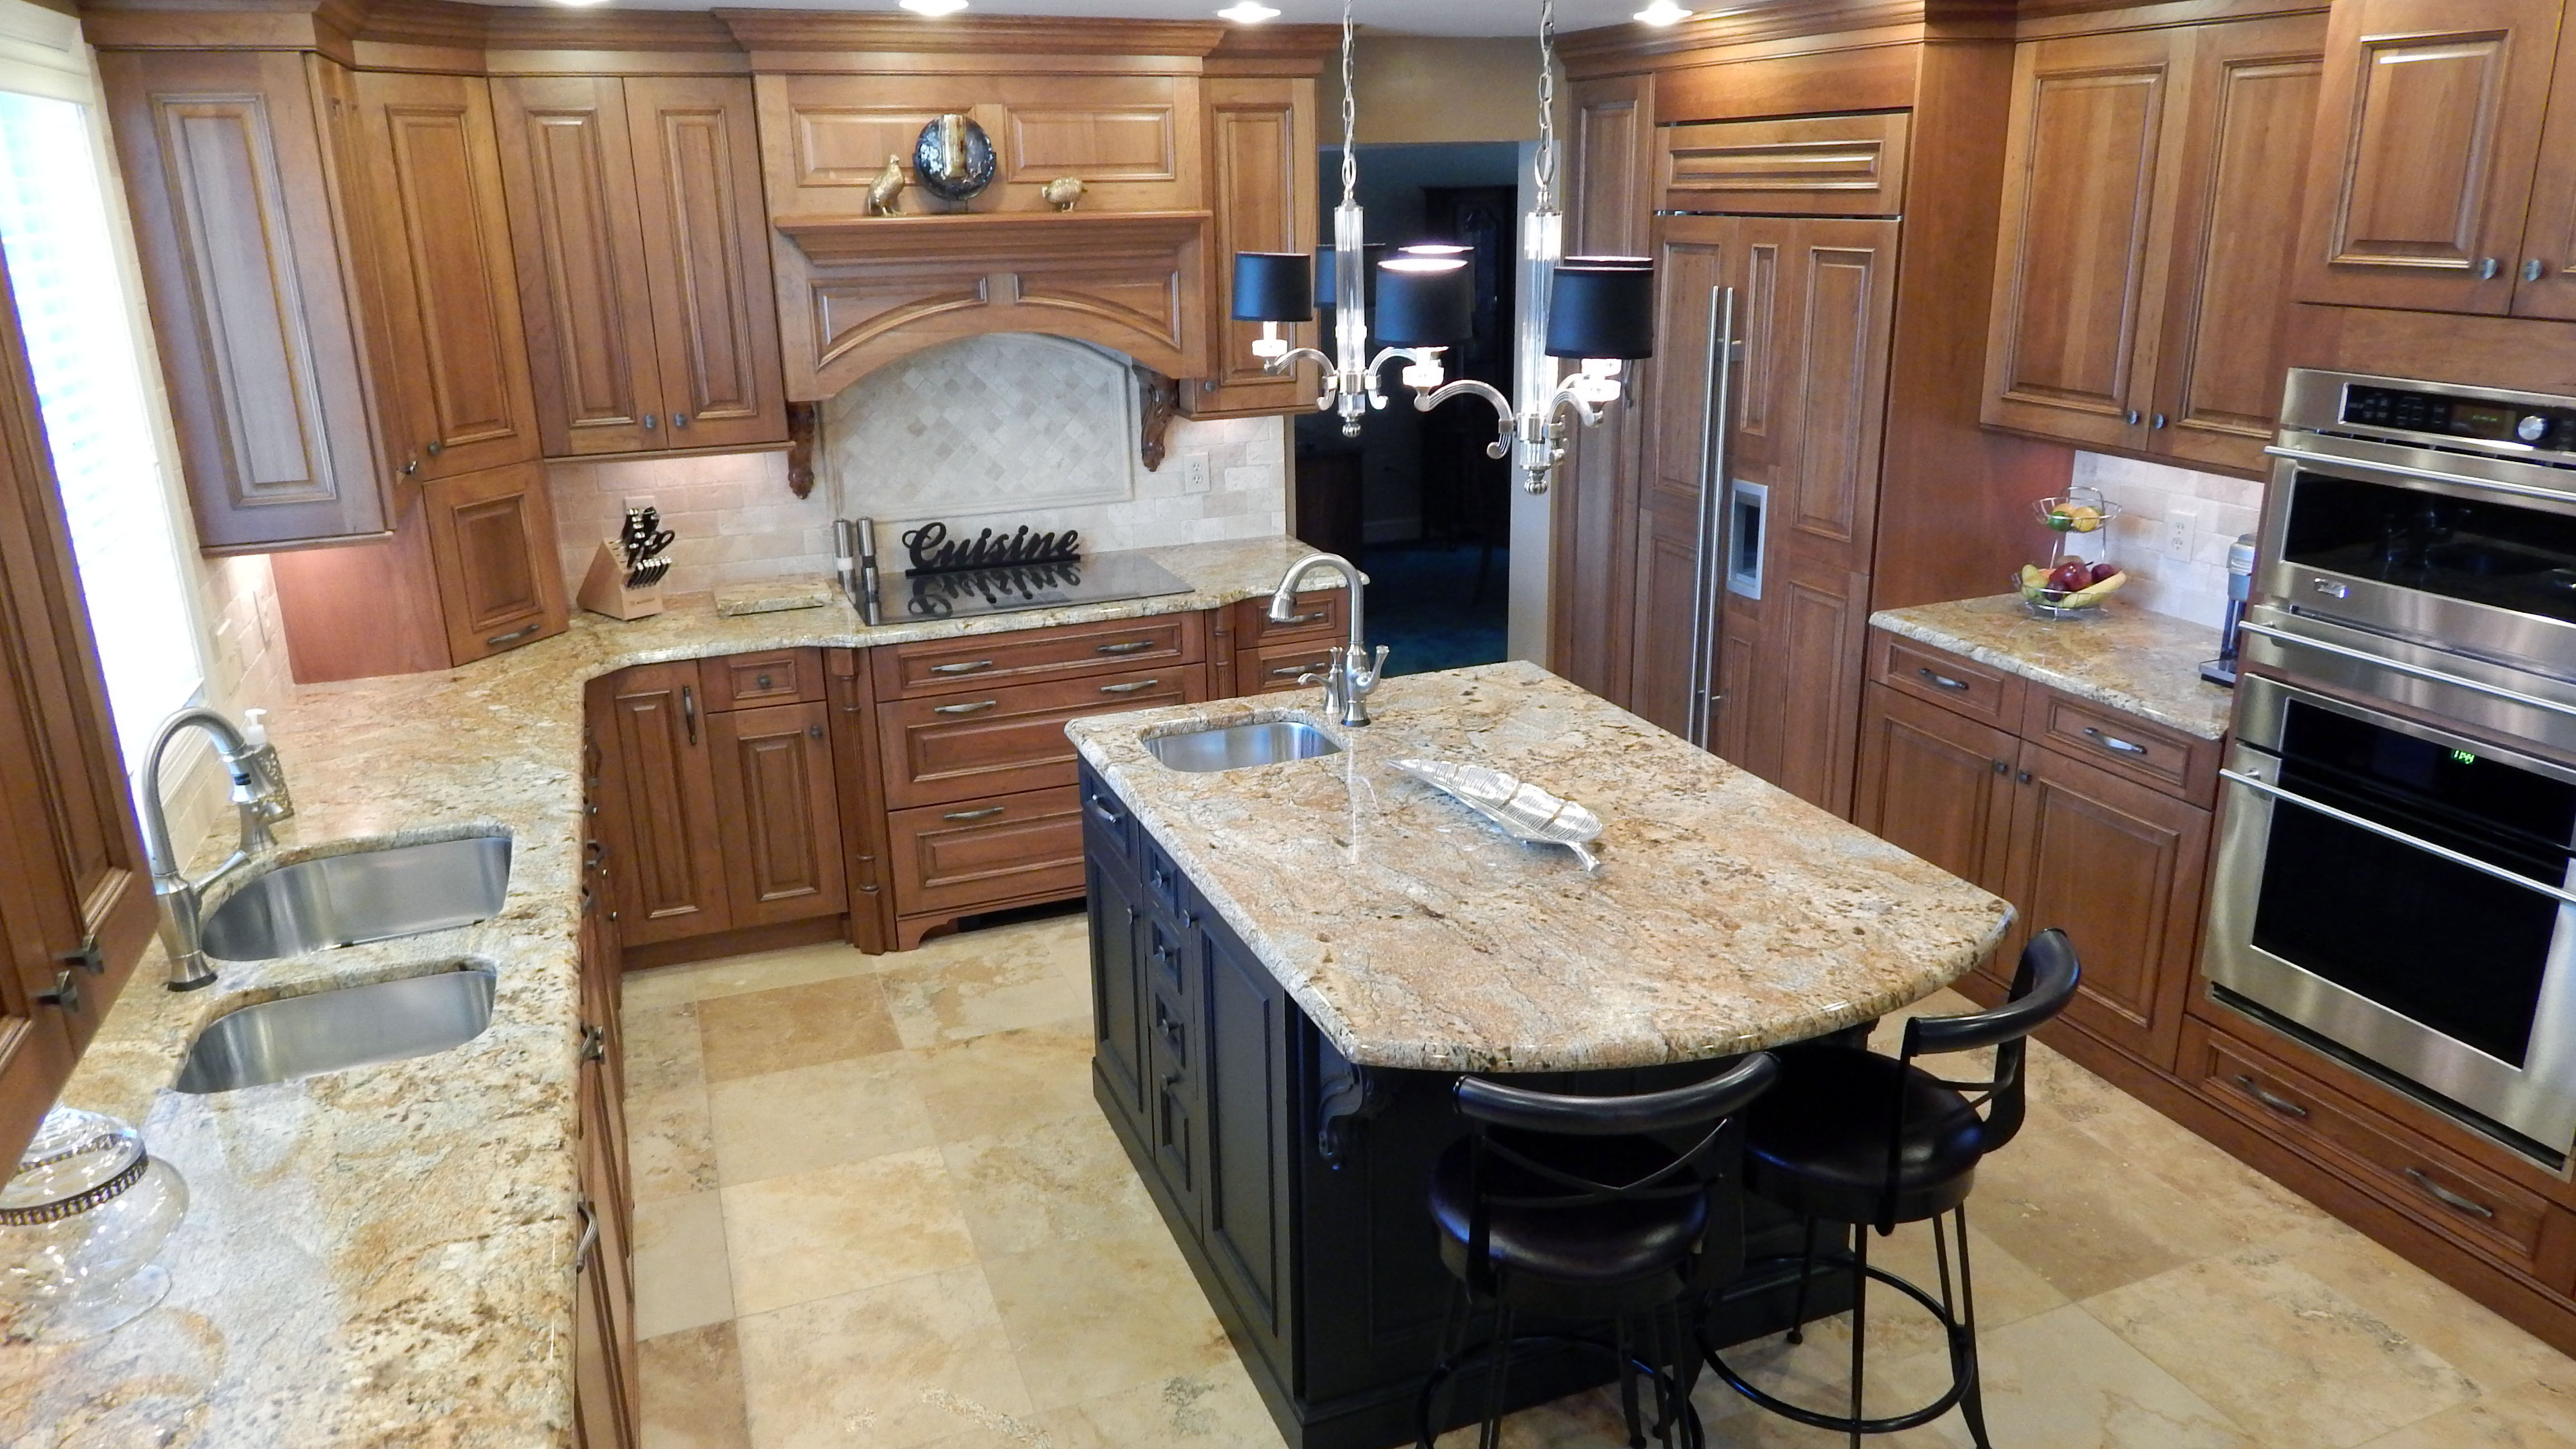 Interior Remodeling Projects For The Winter In York Pa Asj